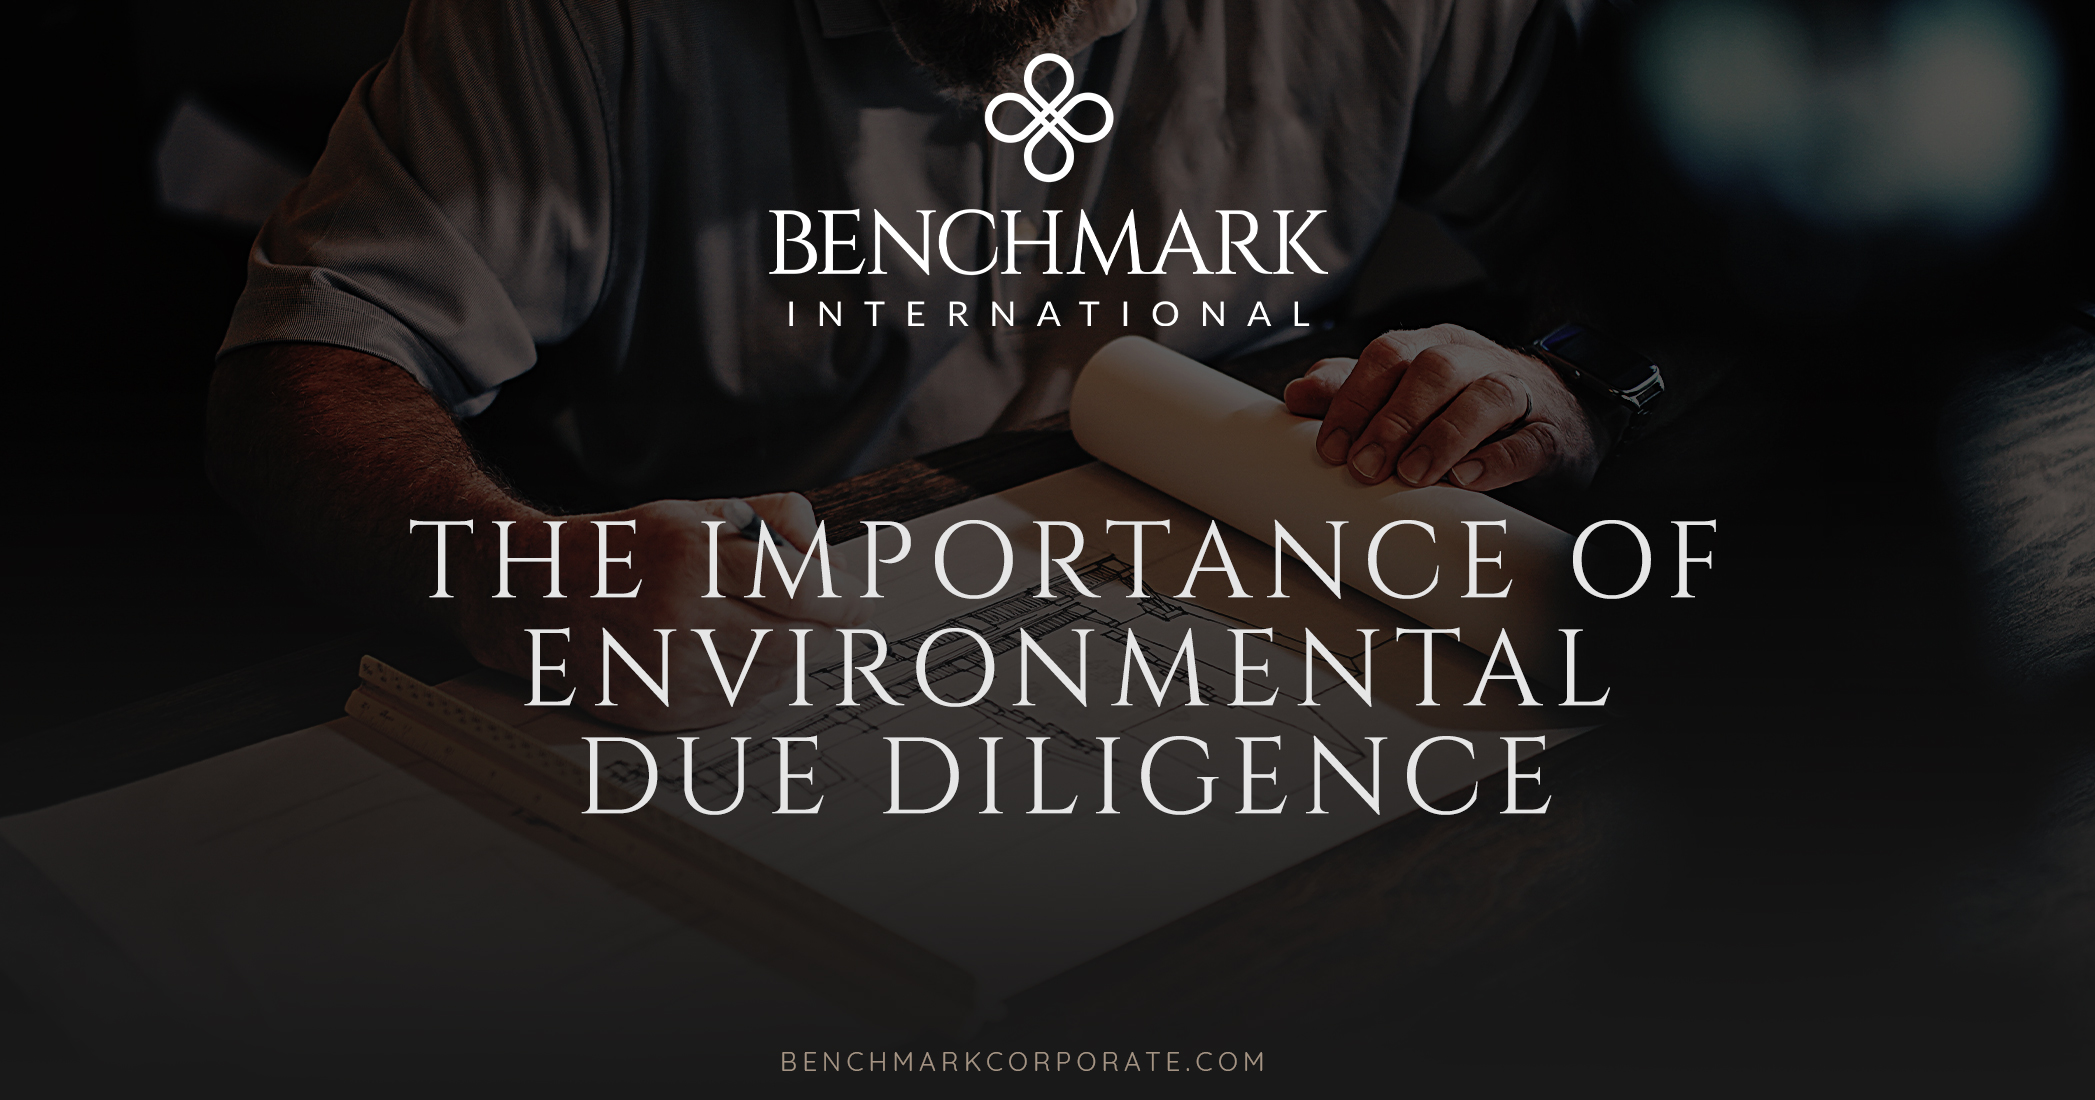 The Importance of Environmental Due Diligence